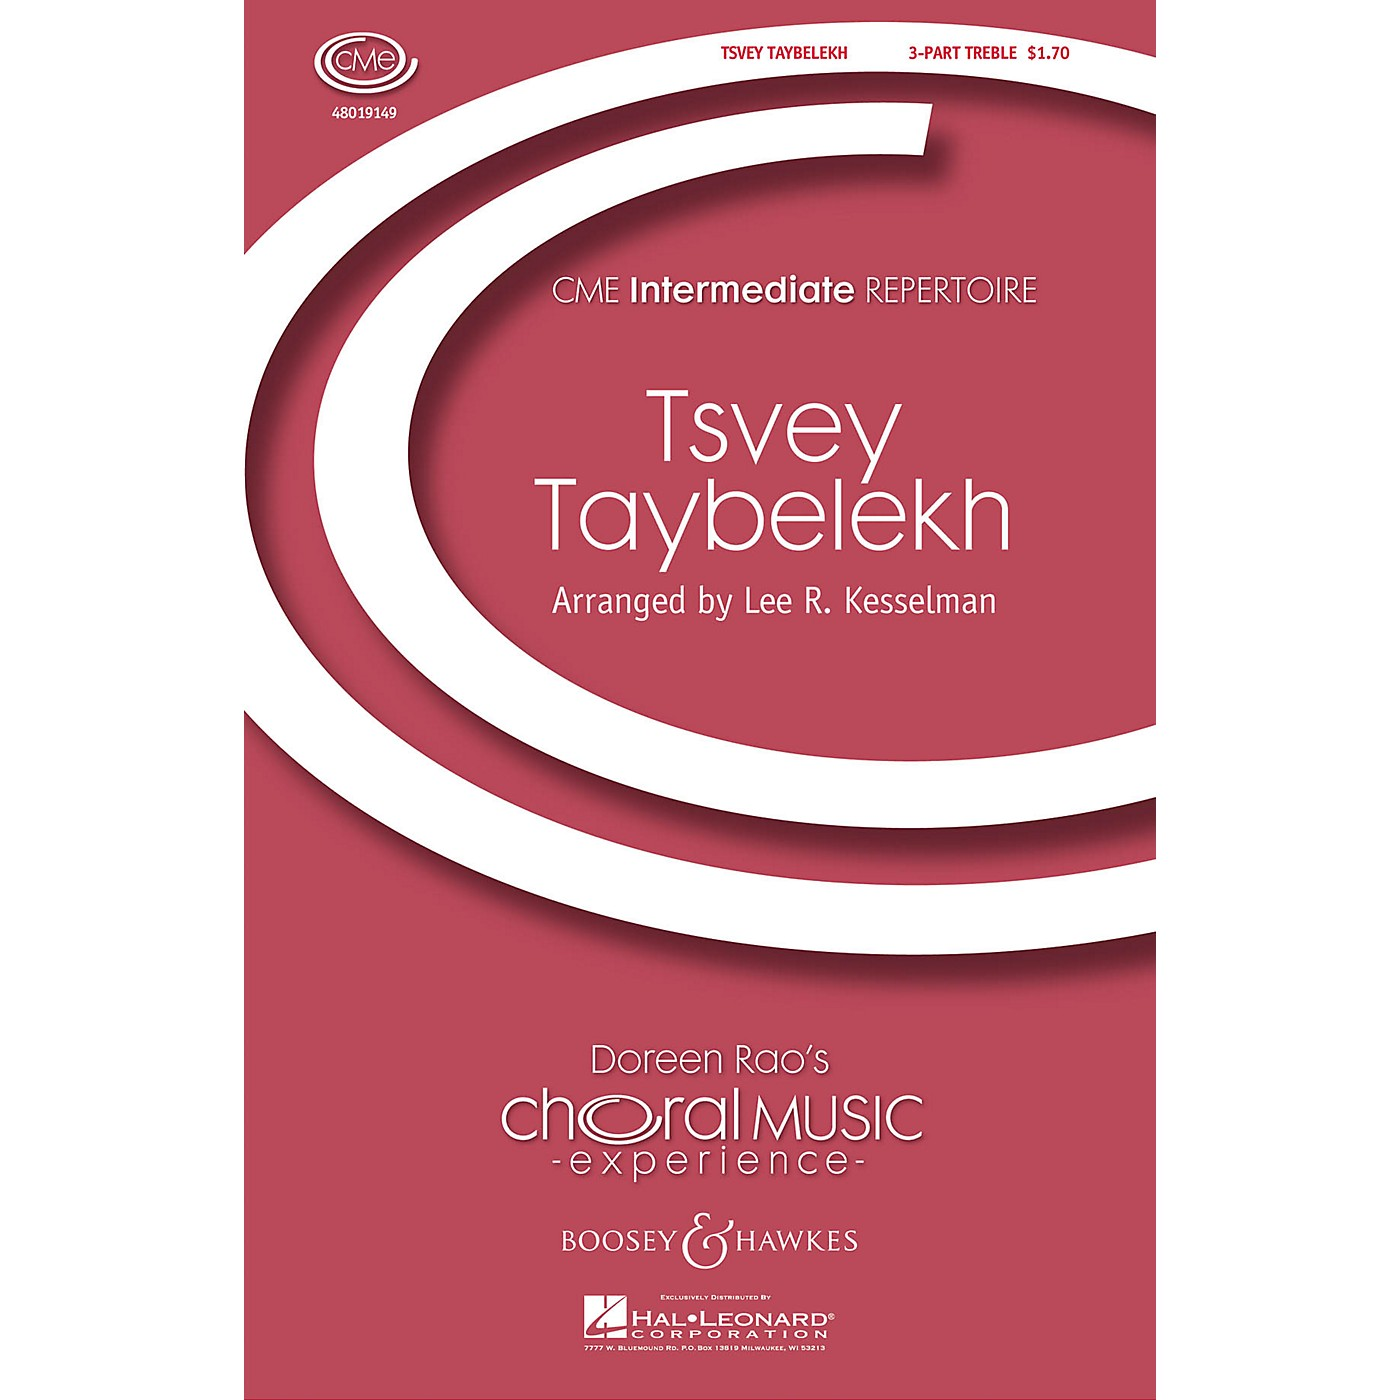 Boosey and Hawkes Tsvey Taybelekh (The Two Doves) (CME Intermediate) 3 Part Treble arranged by Lee Kesselman thumbnail